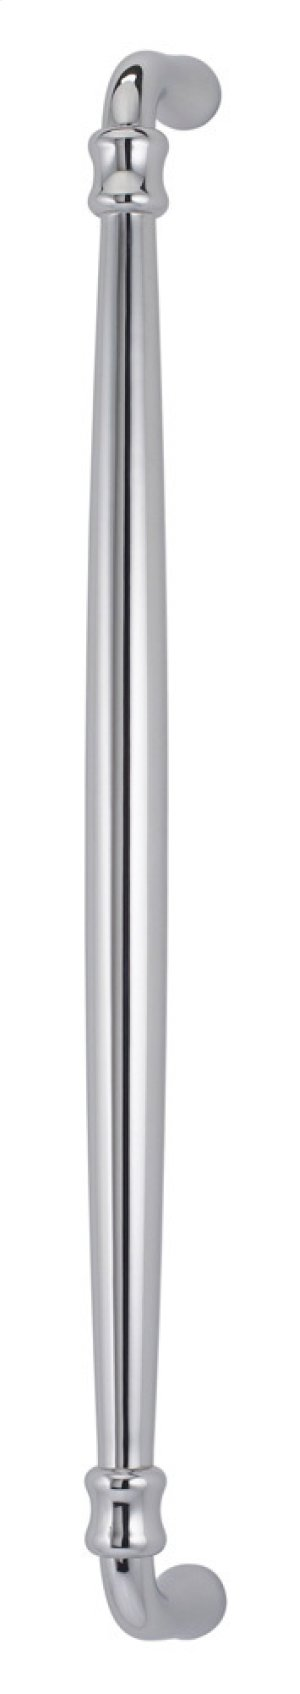 Traditional Cabinet Pull in US26 (Polished Chrome Plated) Product Image